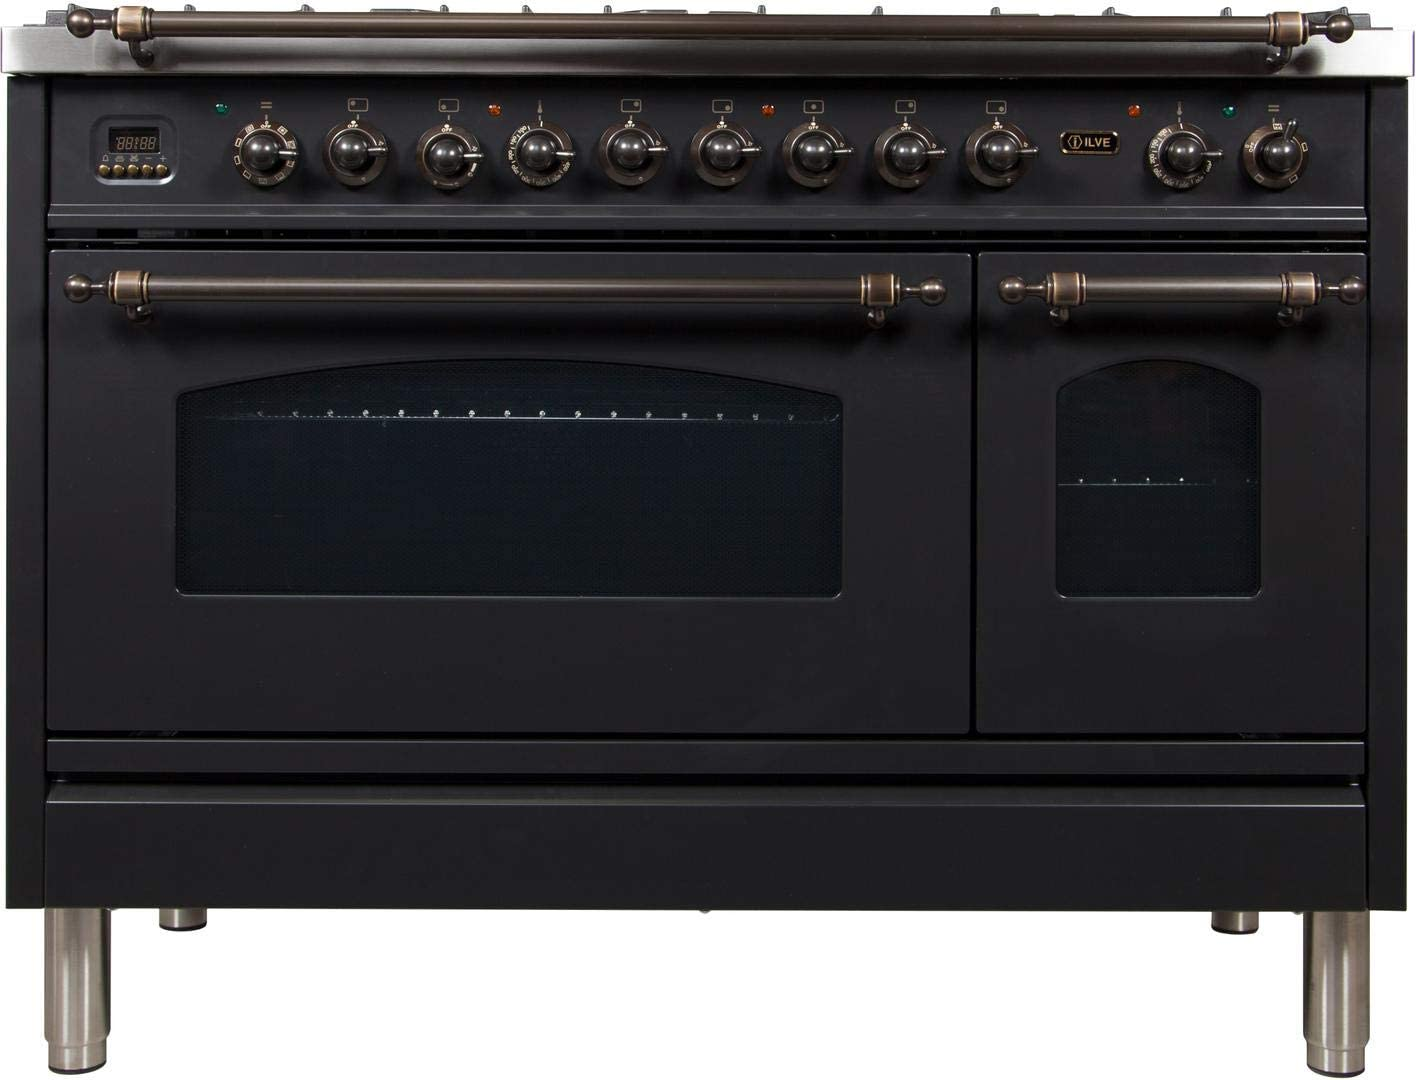 Brass Trim 7 Sealed Brass Burners Ilve UPN120FDMPM Nostalgie Series 48 Inch Dual Fuel Convection Freestanding Range 5 cu.ft Natural Gas Total Oven Capacity in Matte Graphite